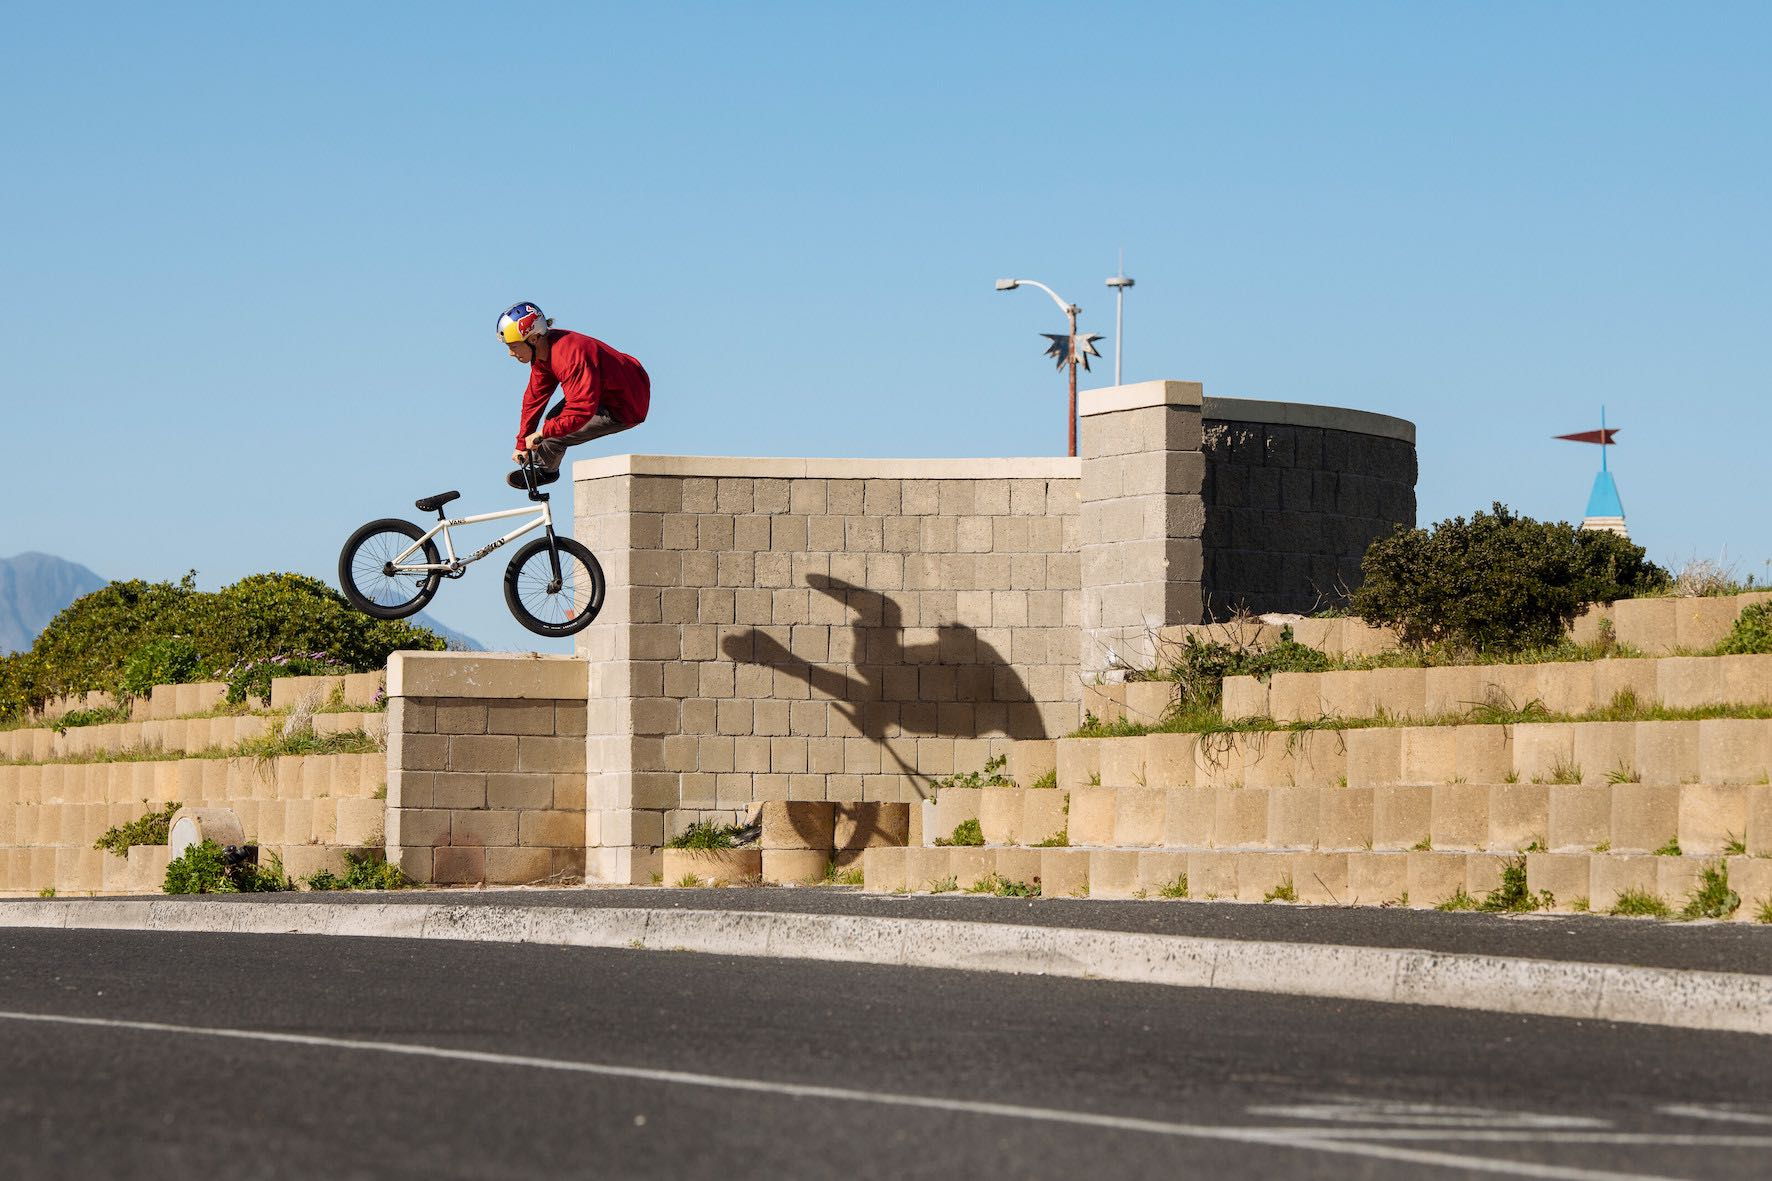 Shapes in the City with Murray Loubser